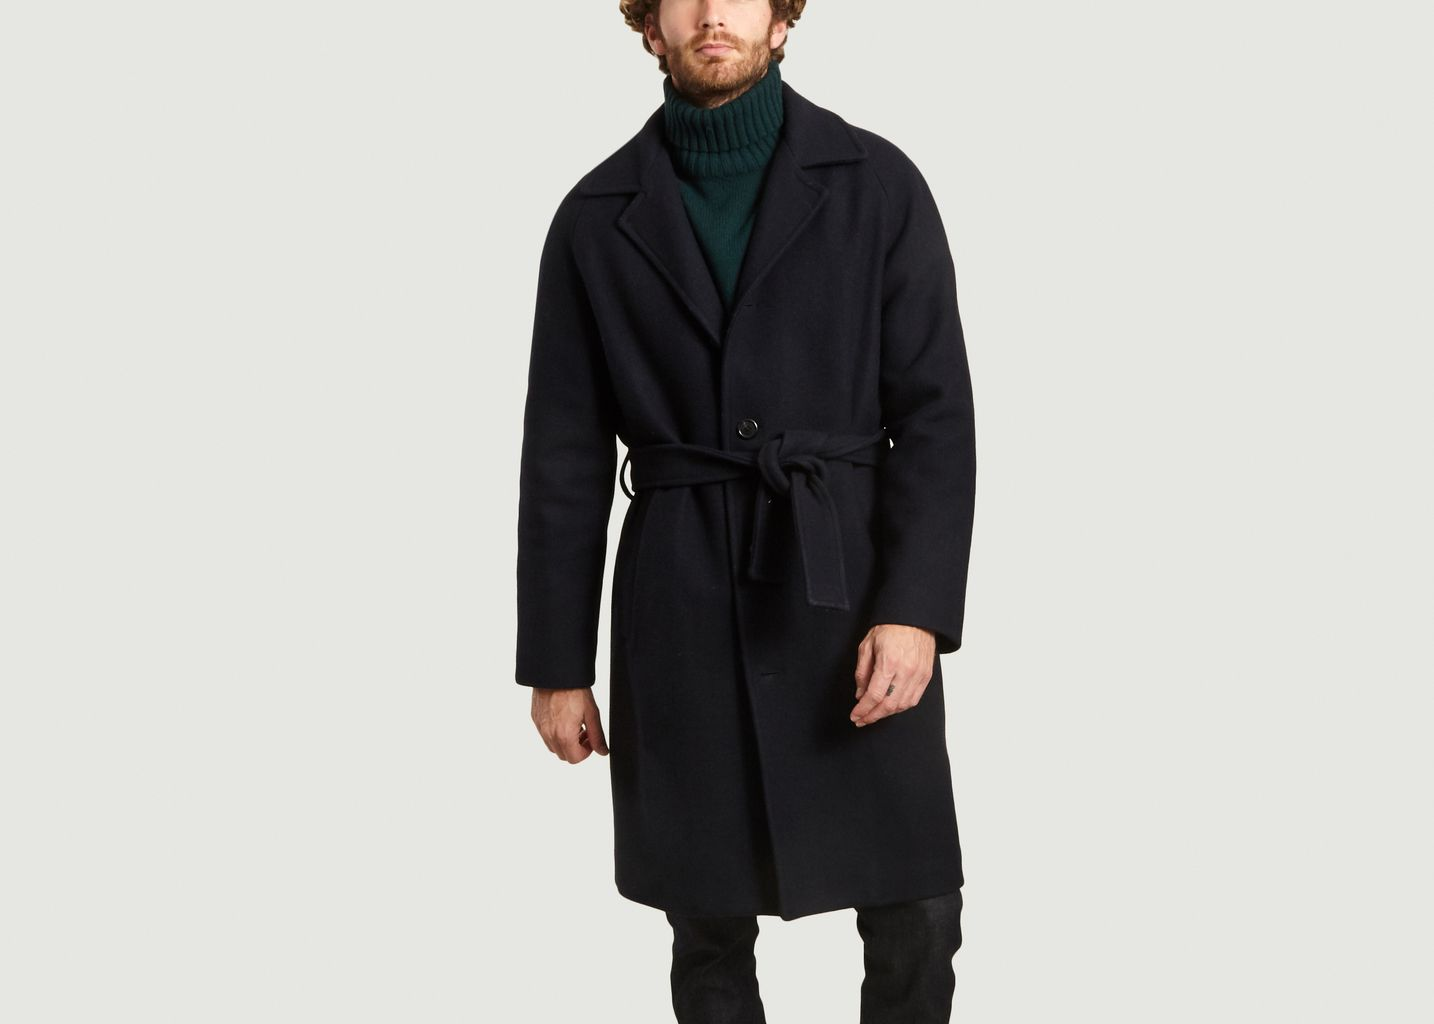 Manteau Tristan Bleu Marine Editions M.R | L'Exception